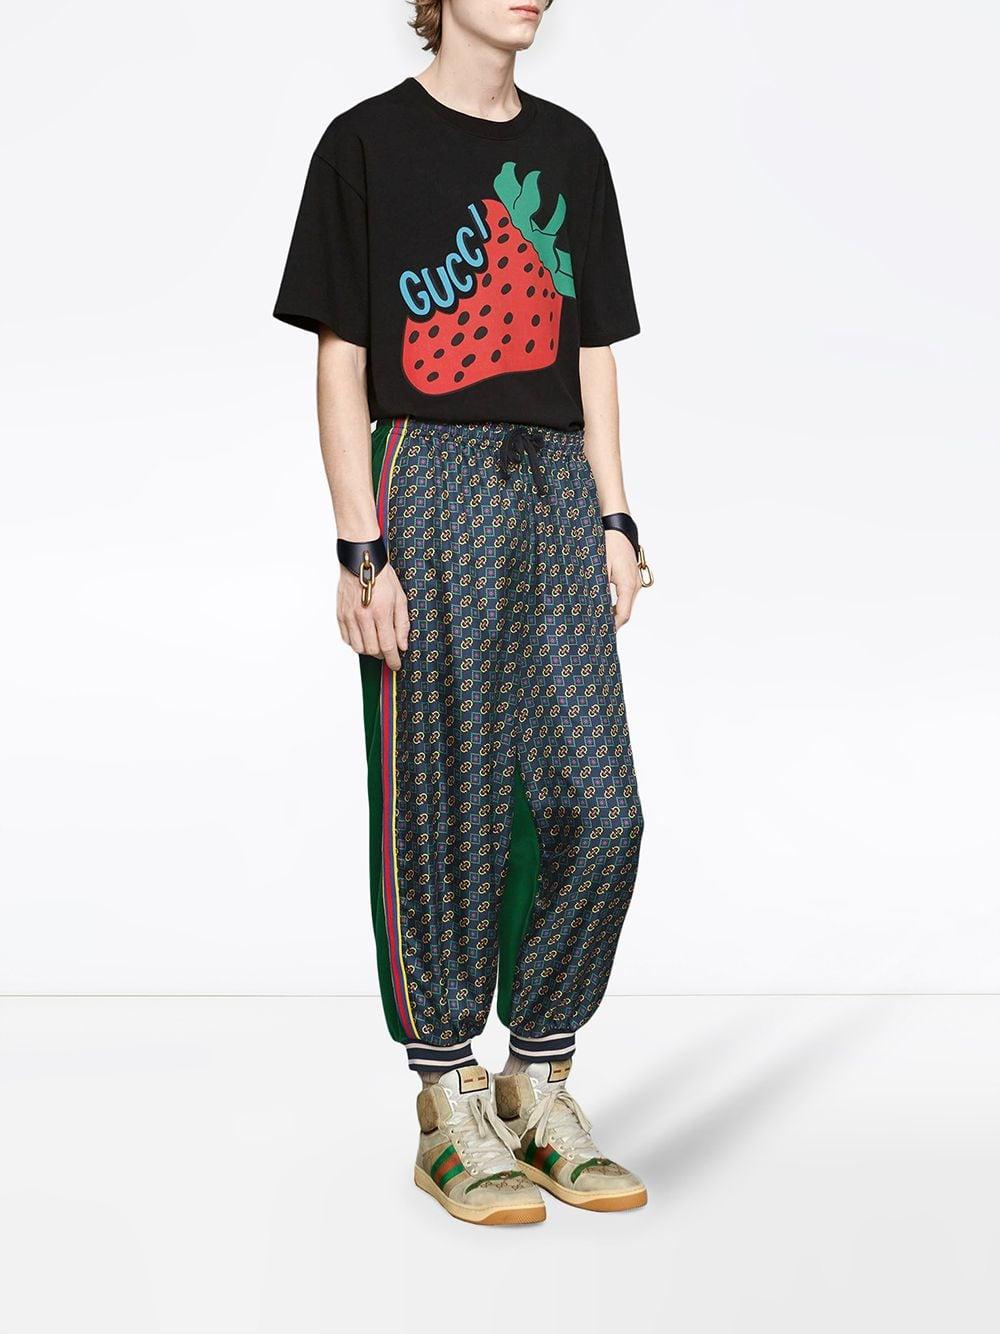 d73eafde130 Gucci T-shirt With Strawberry Print in Black for Men - Save 13% - Lyst